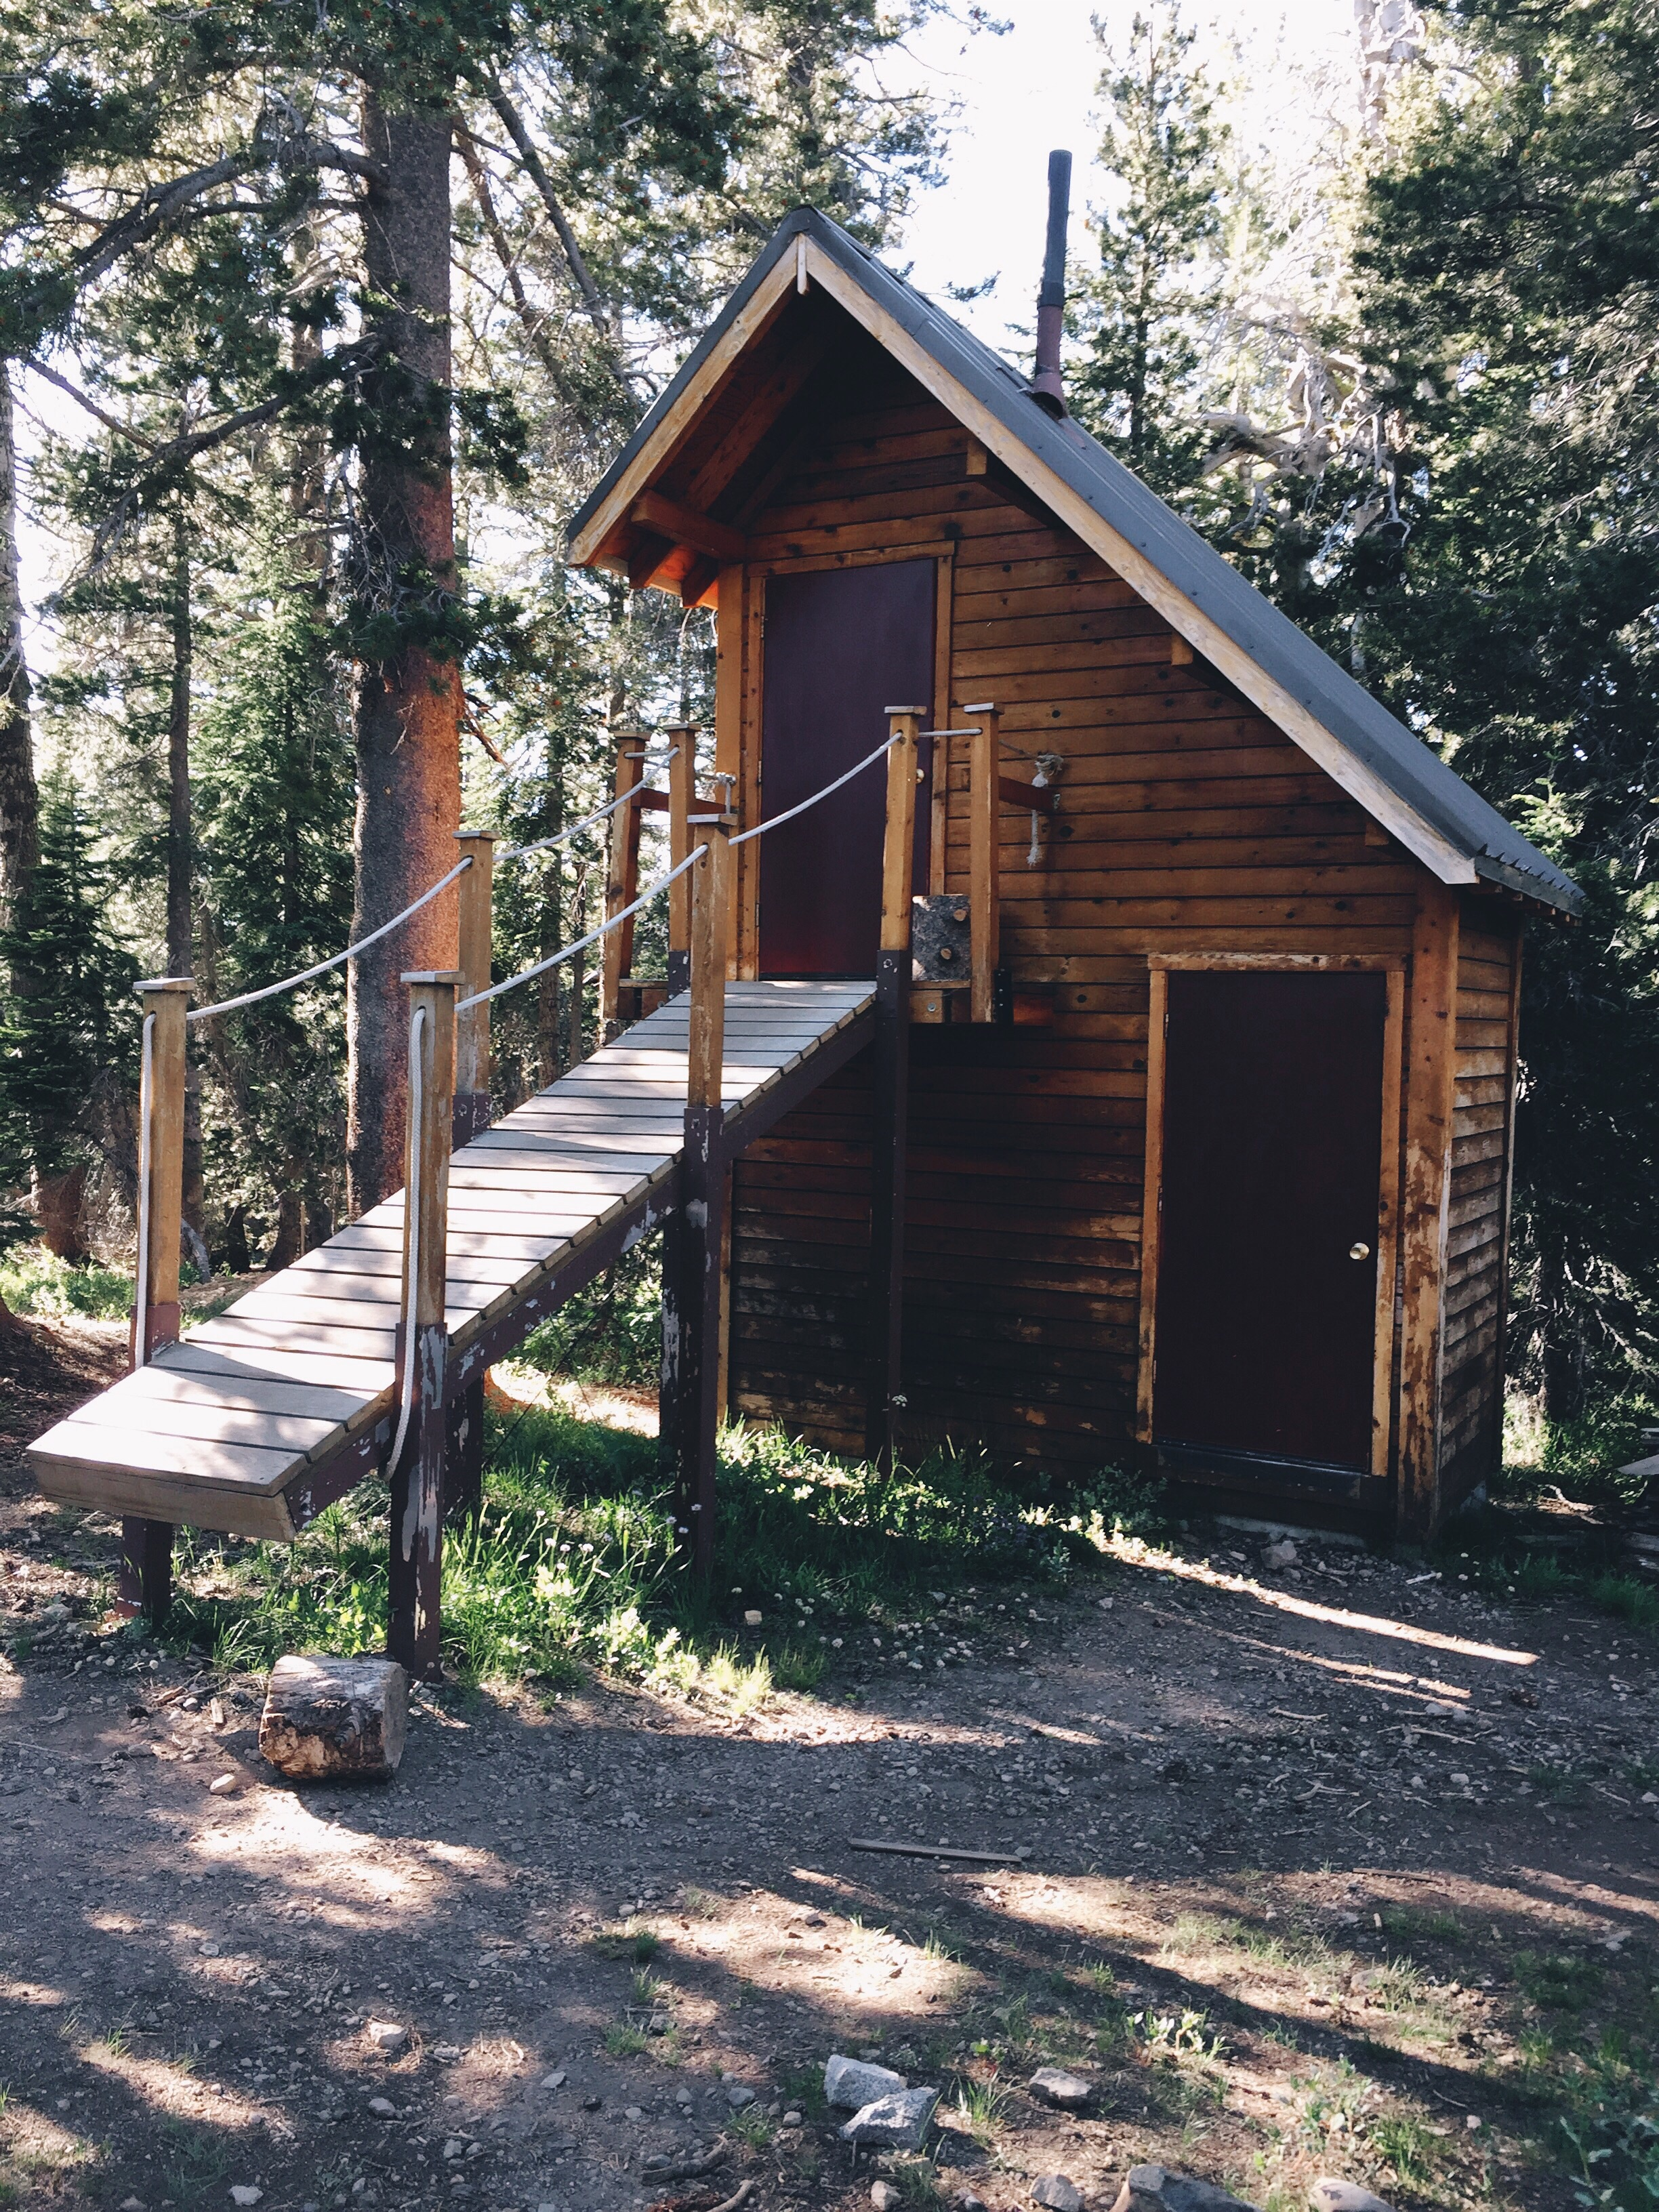 The two story outhouse.